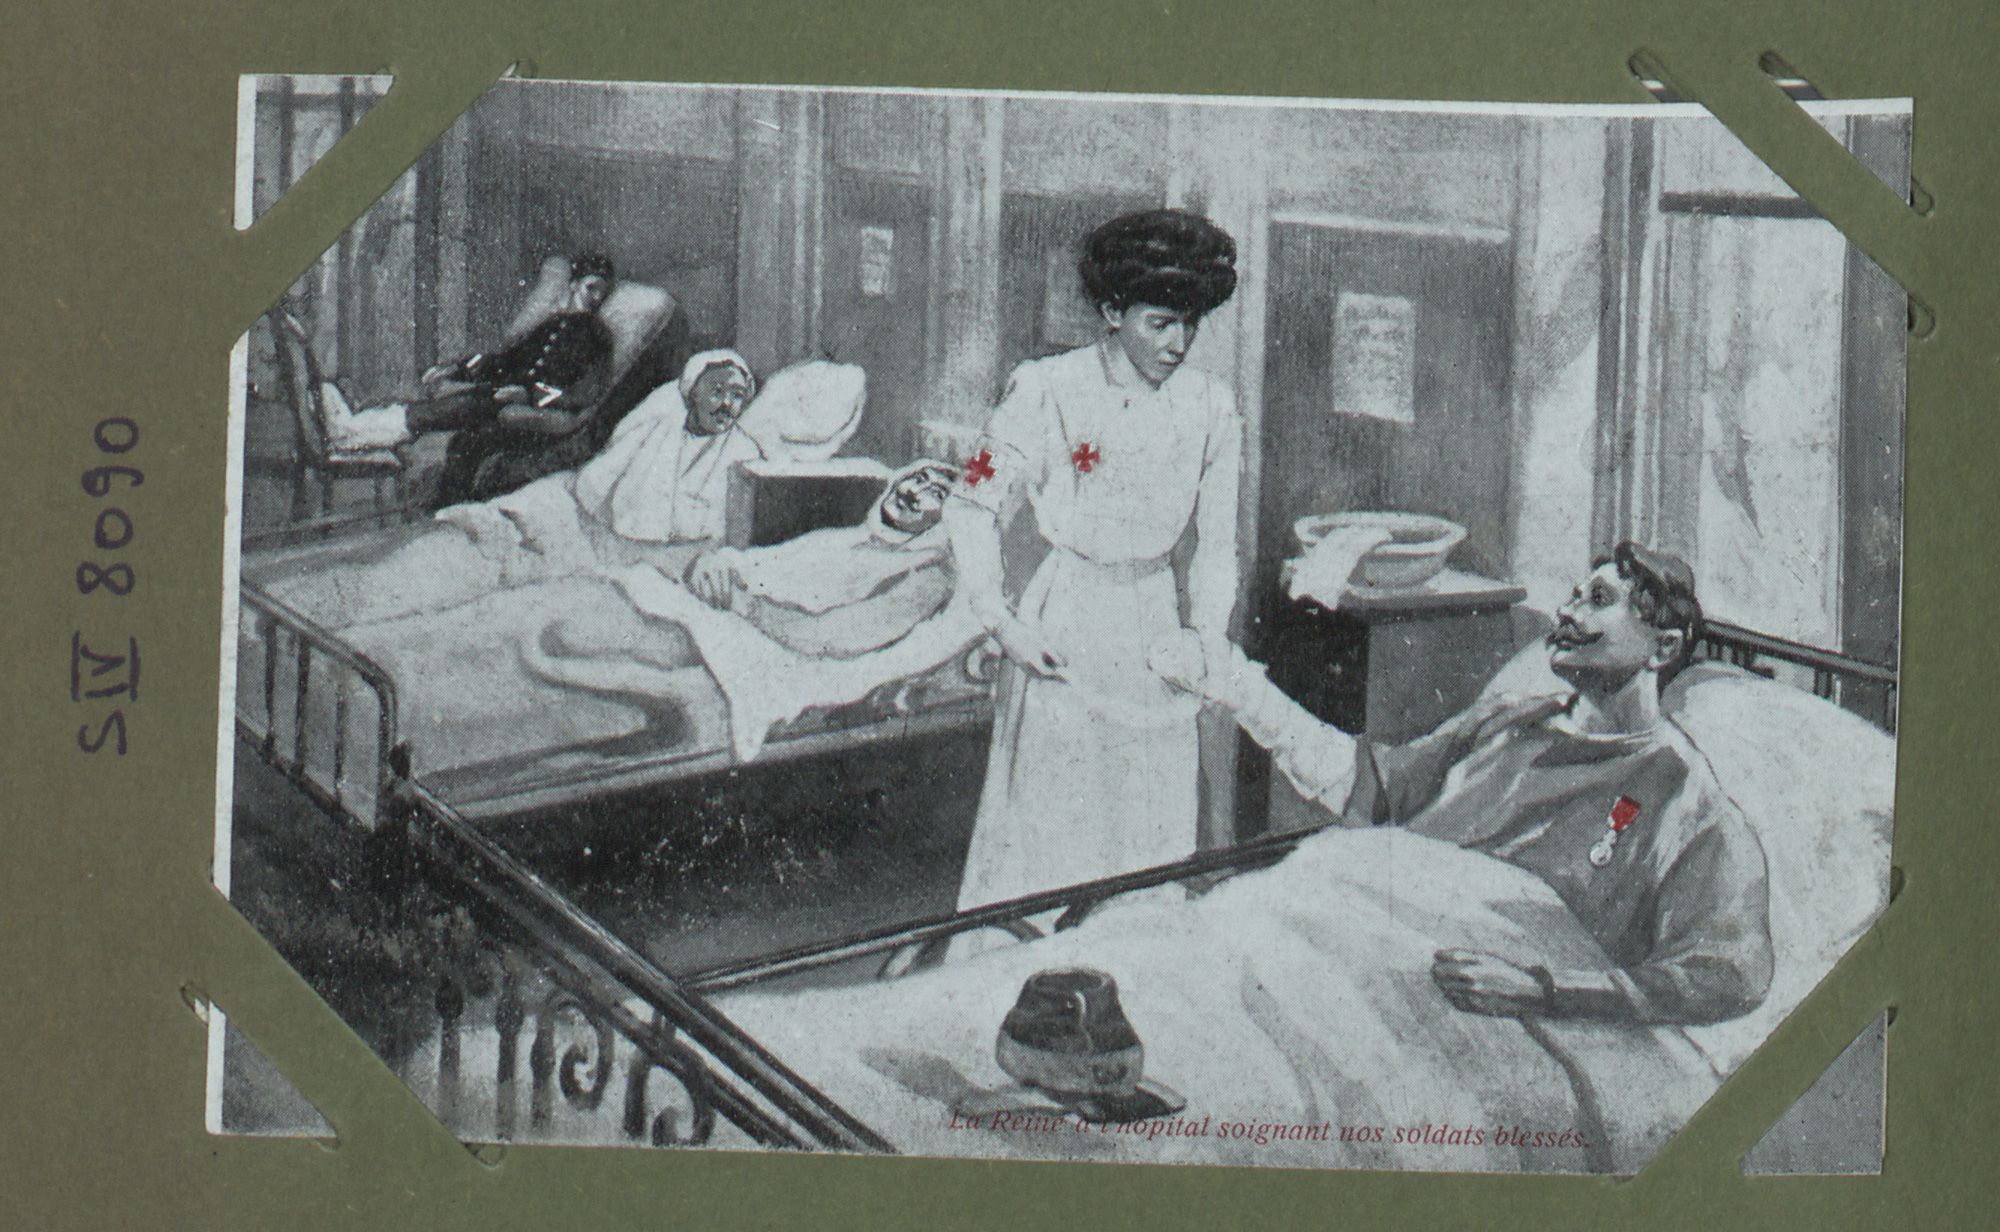 Postcard showing Queen Elisabeth, wife of King Albert I of Belgium, visiting wounded Allied soldiers.